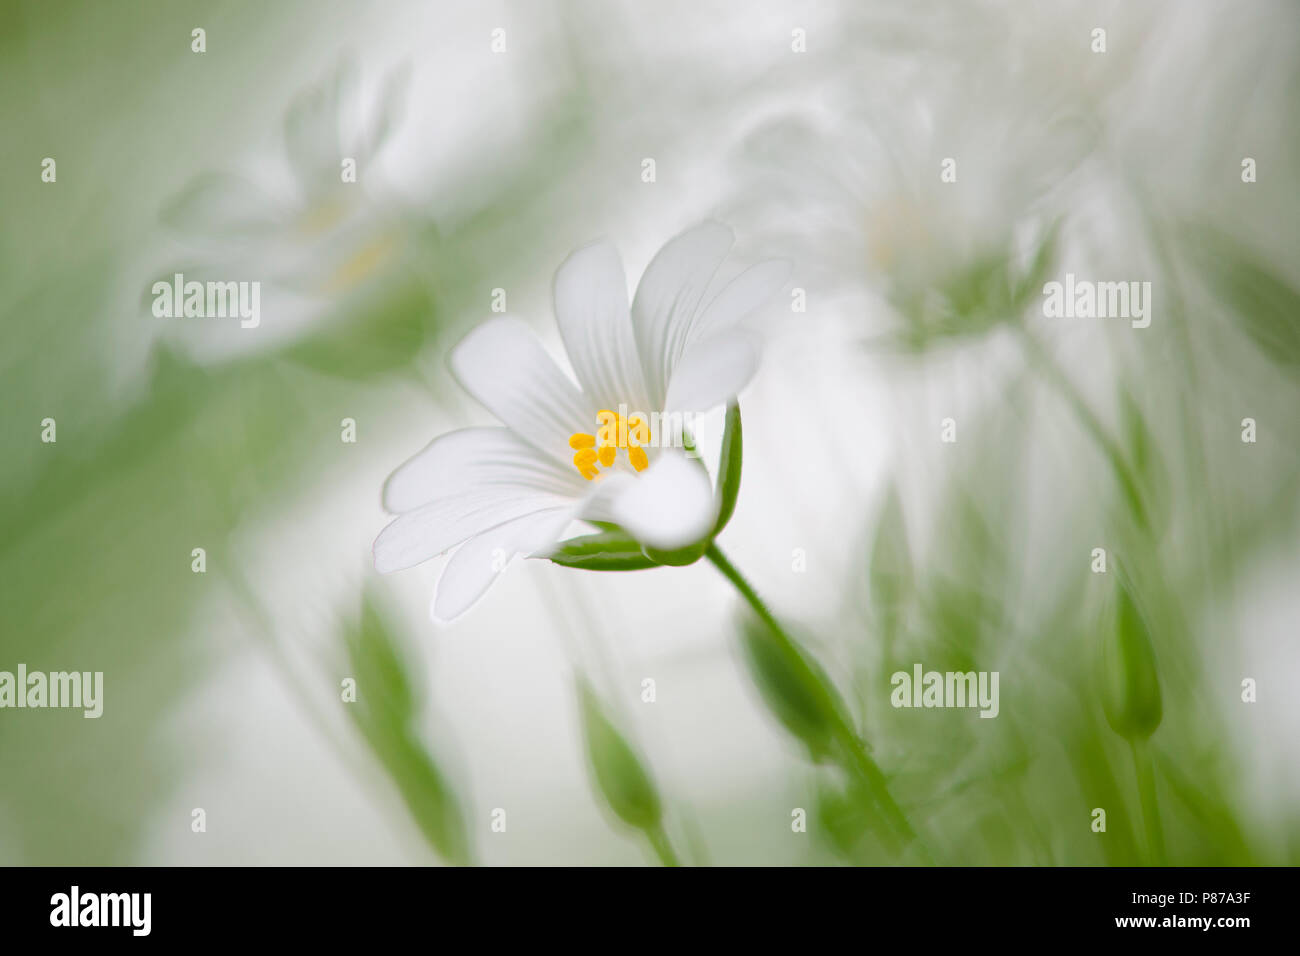 Grote Foto Op Muur.Grote Muur Greater Stitchwort Stock Photo 211603267 Alamy